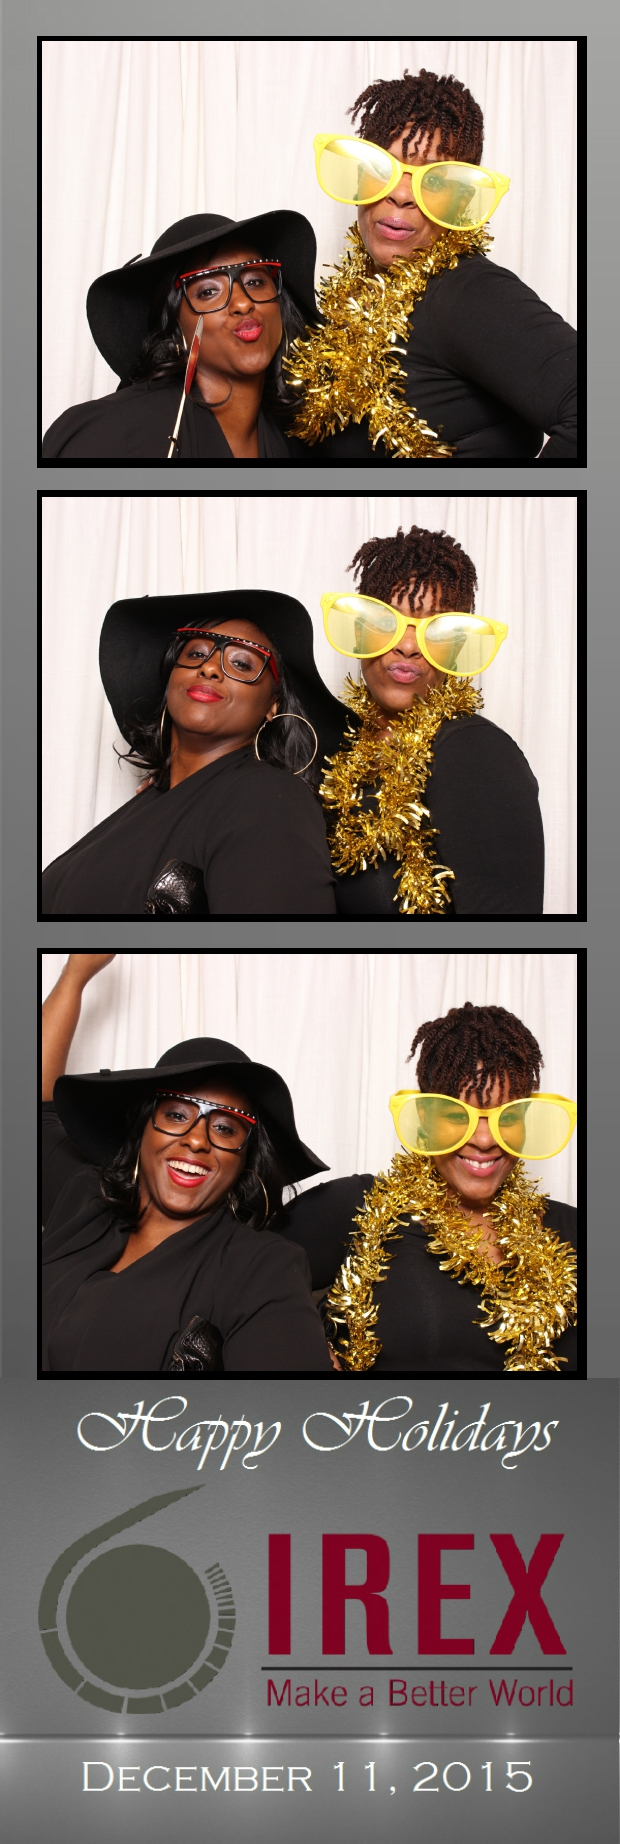 Guest House Events Photo Booth Strips IREX (61).jpg